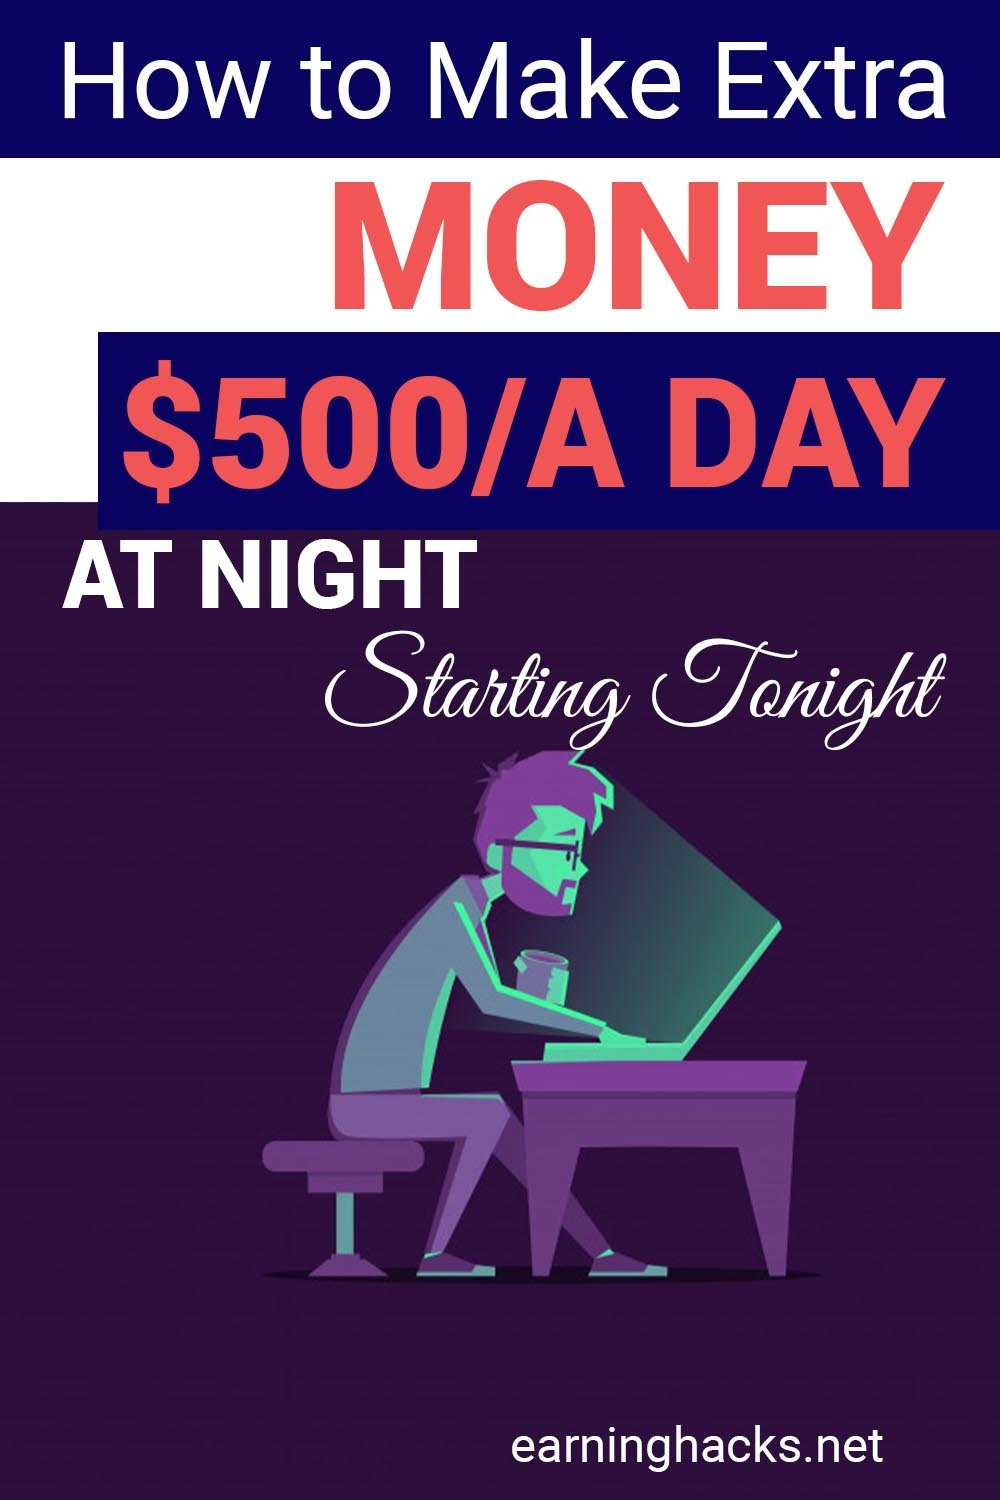 How To Make An Extra $500